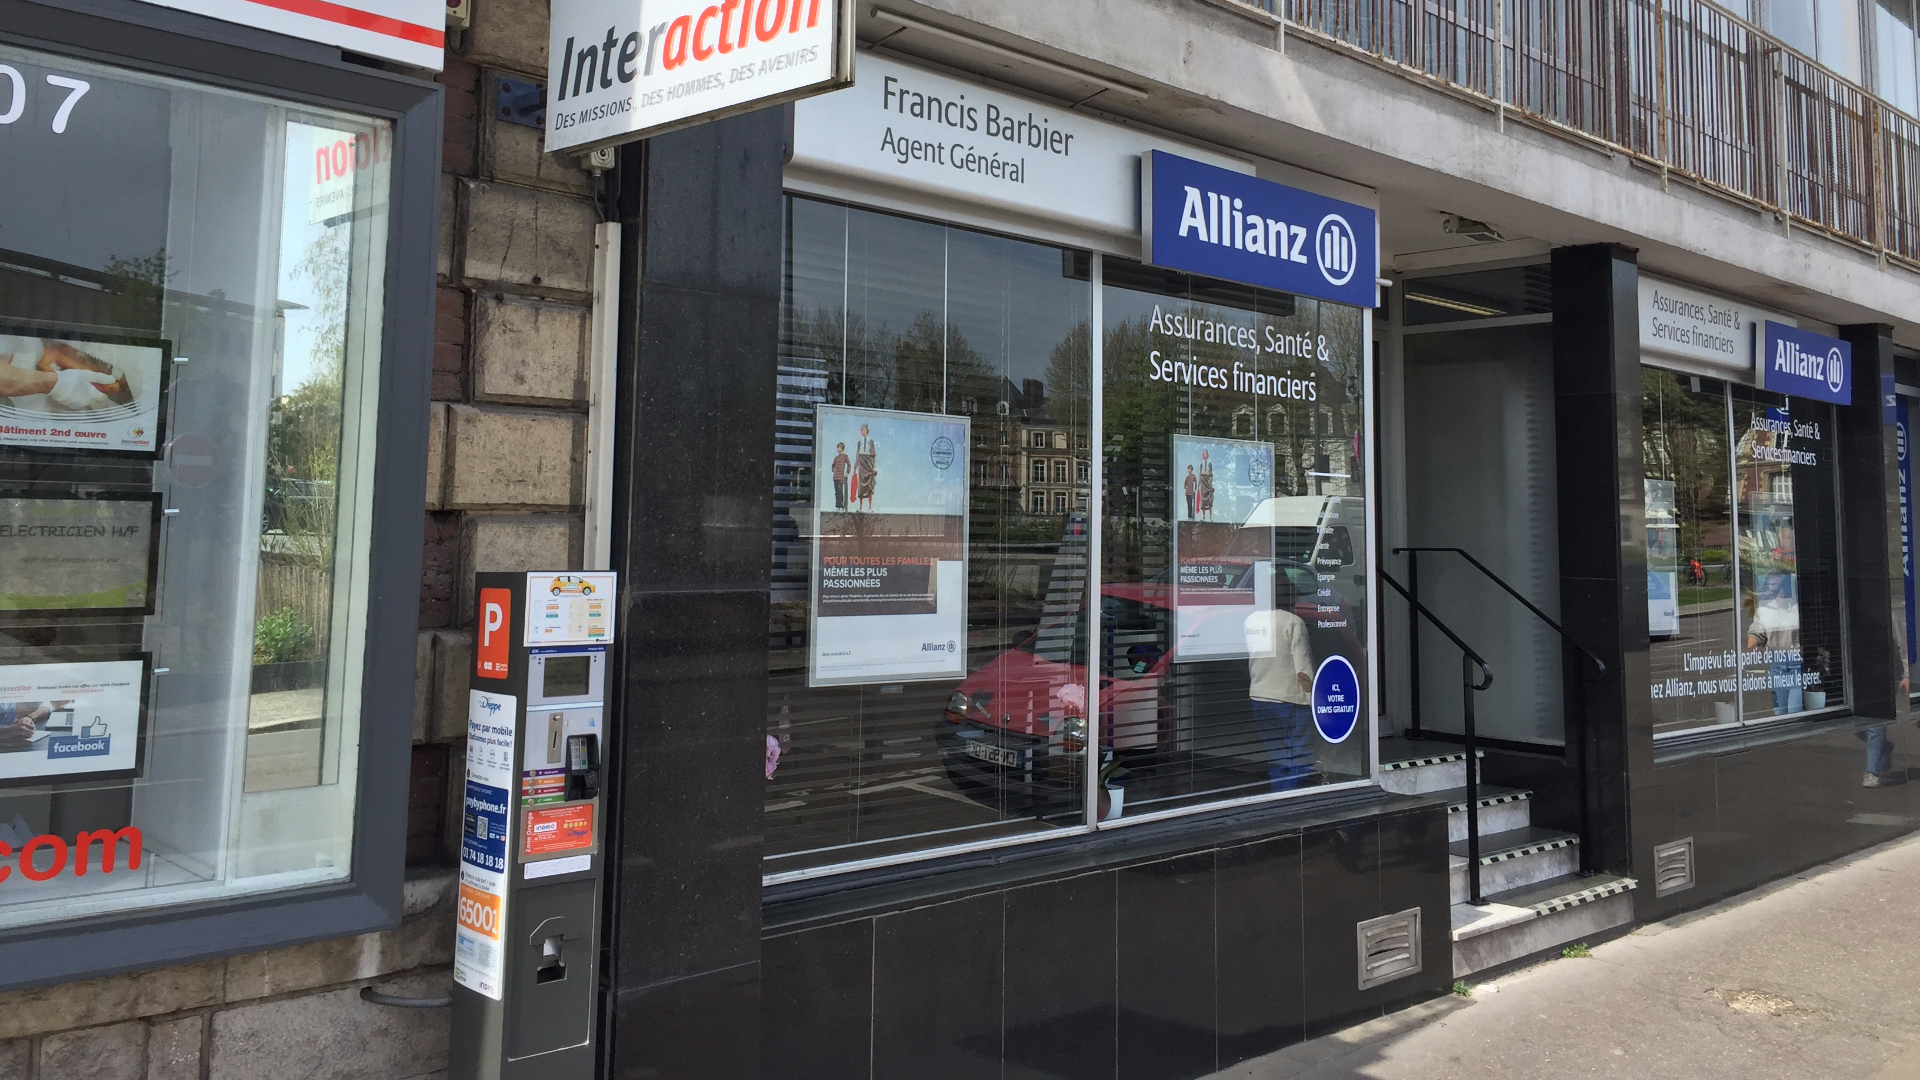 Allianz DIEPPE - Francis BARBIER